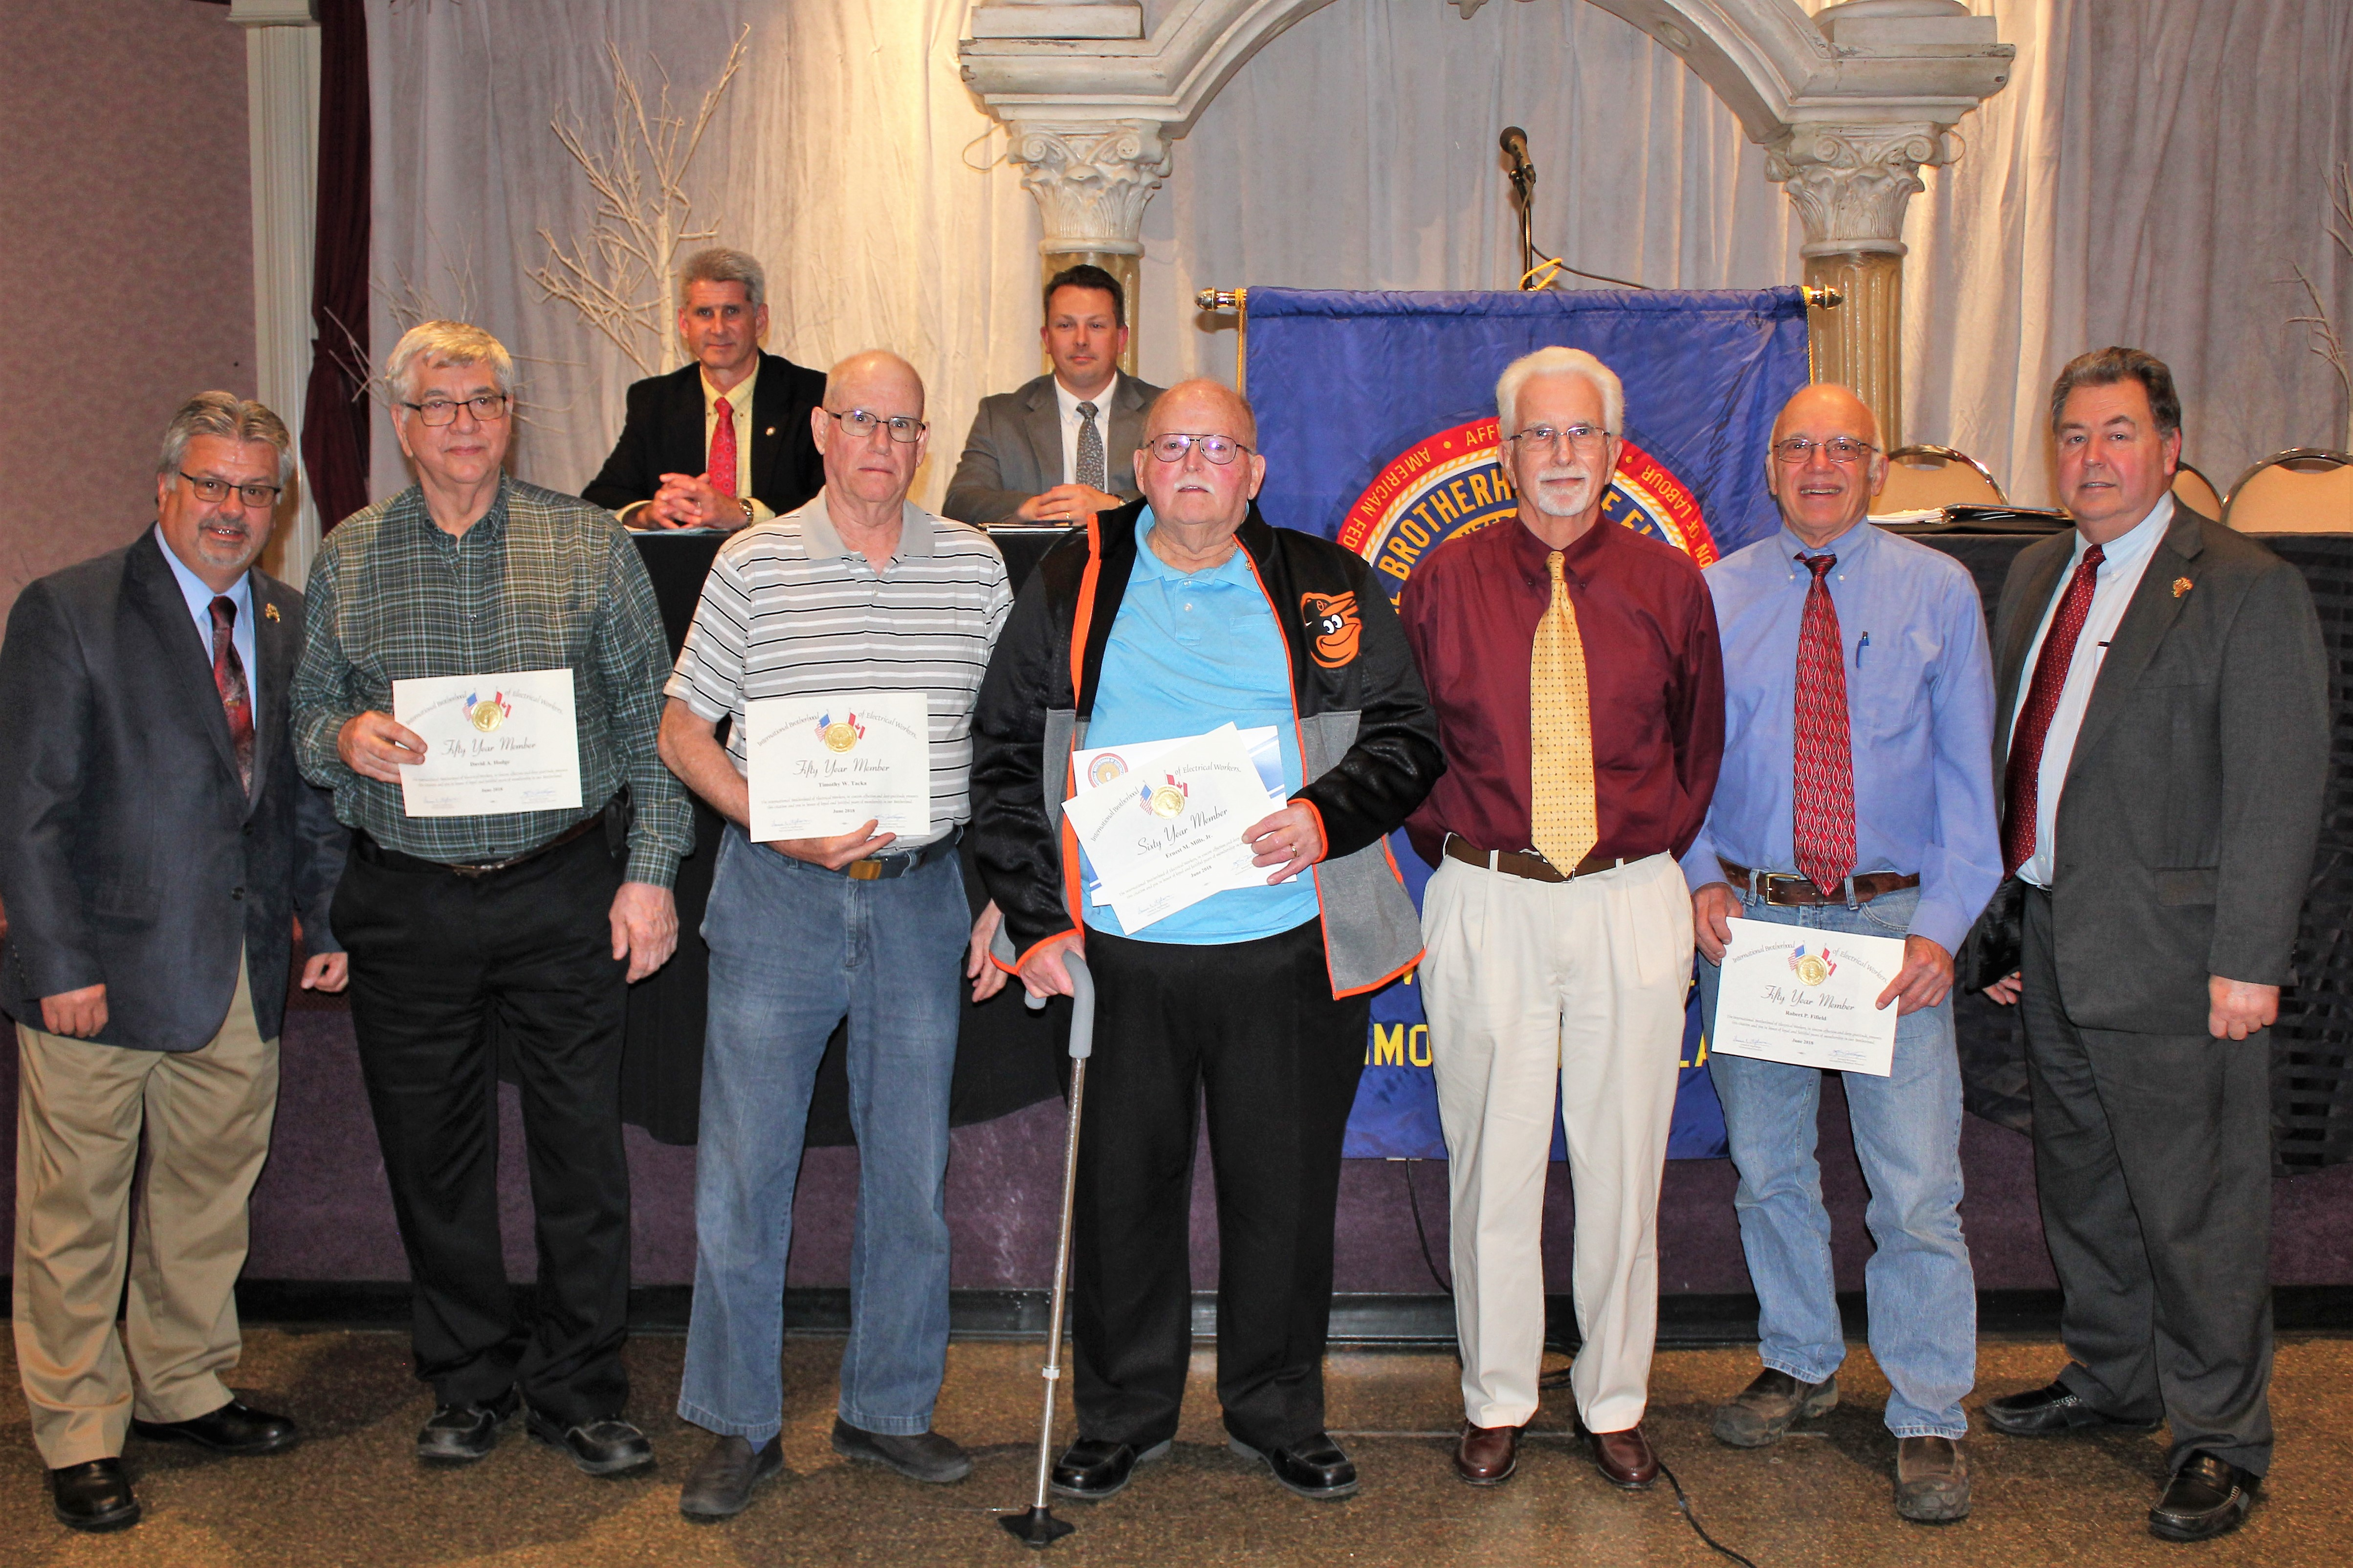 <br /><strong> 60 Year and 50 Year Pins were awarded to 5 members at the May 2018 meeting.